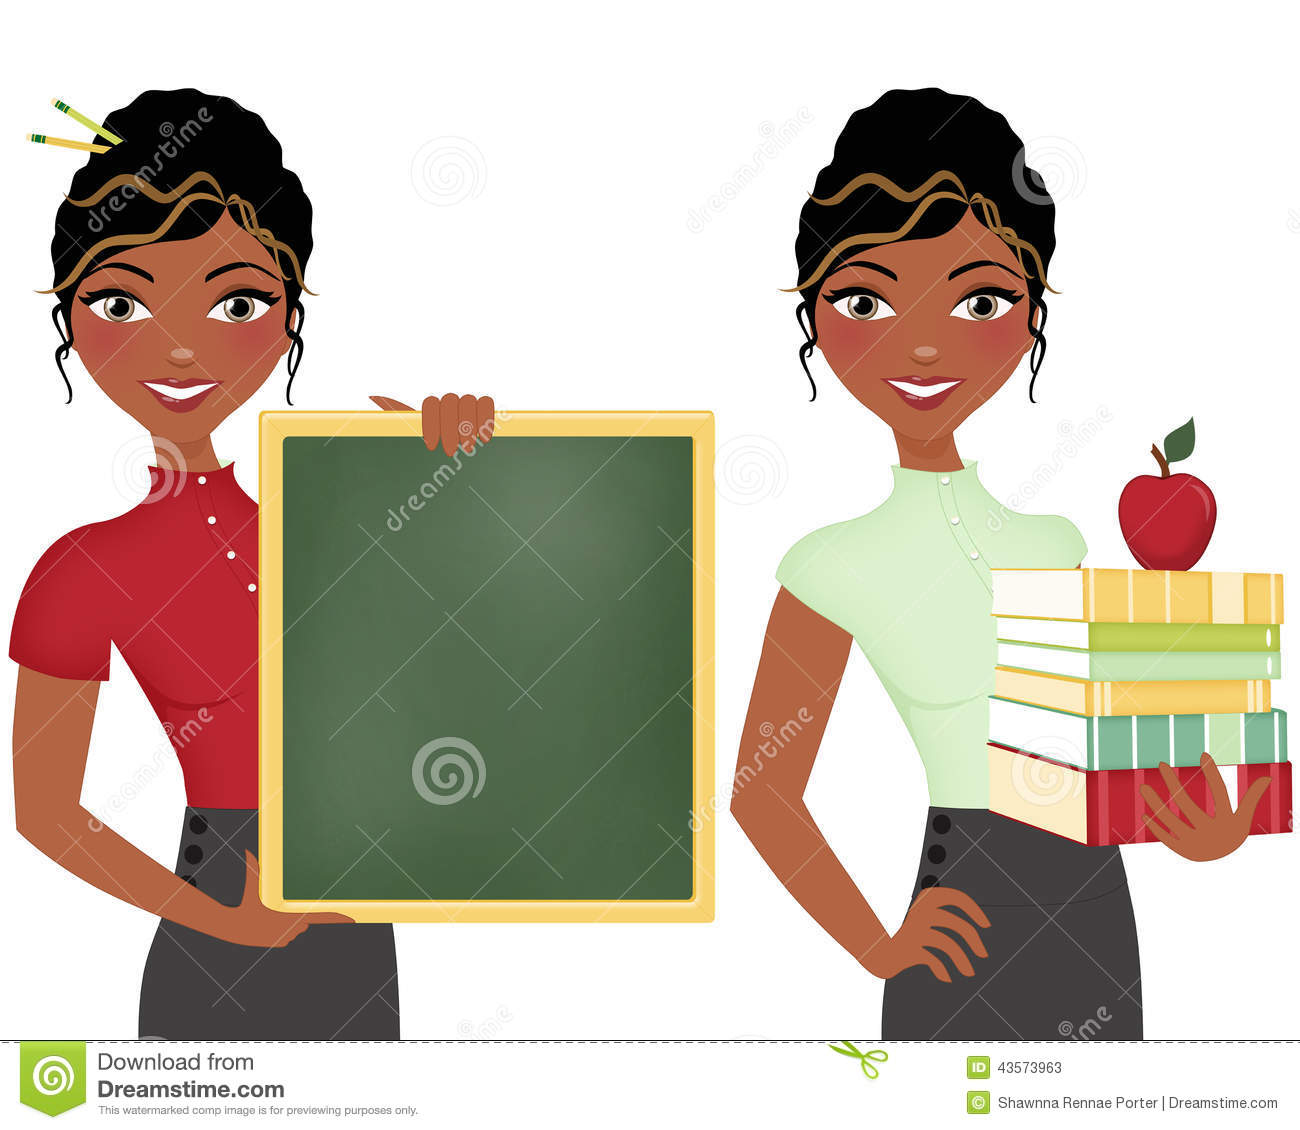 clipart free download Clipartimage com . Teach clipart african american teacher.